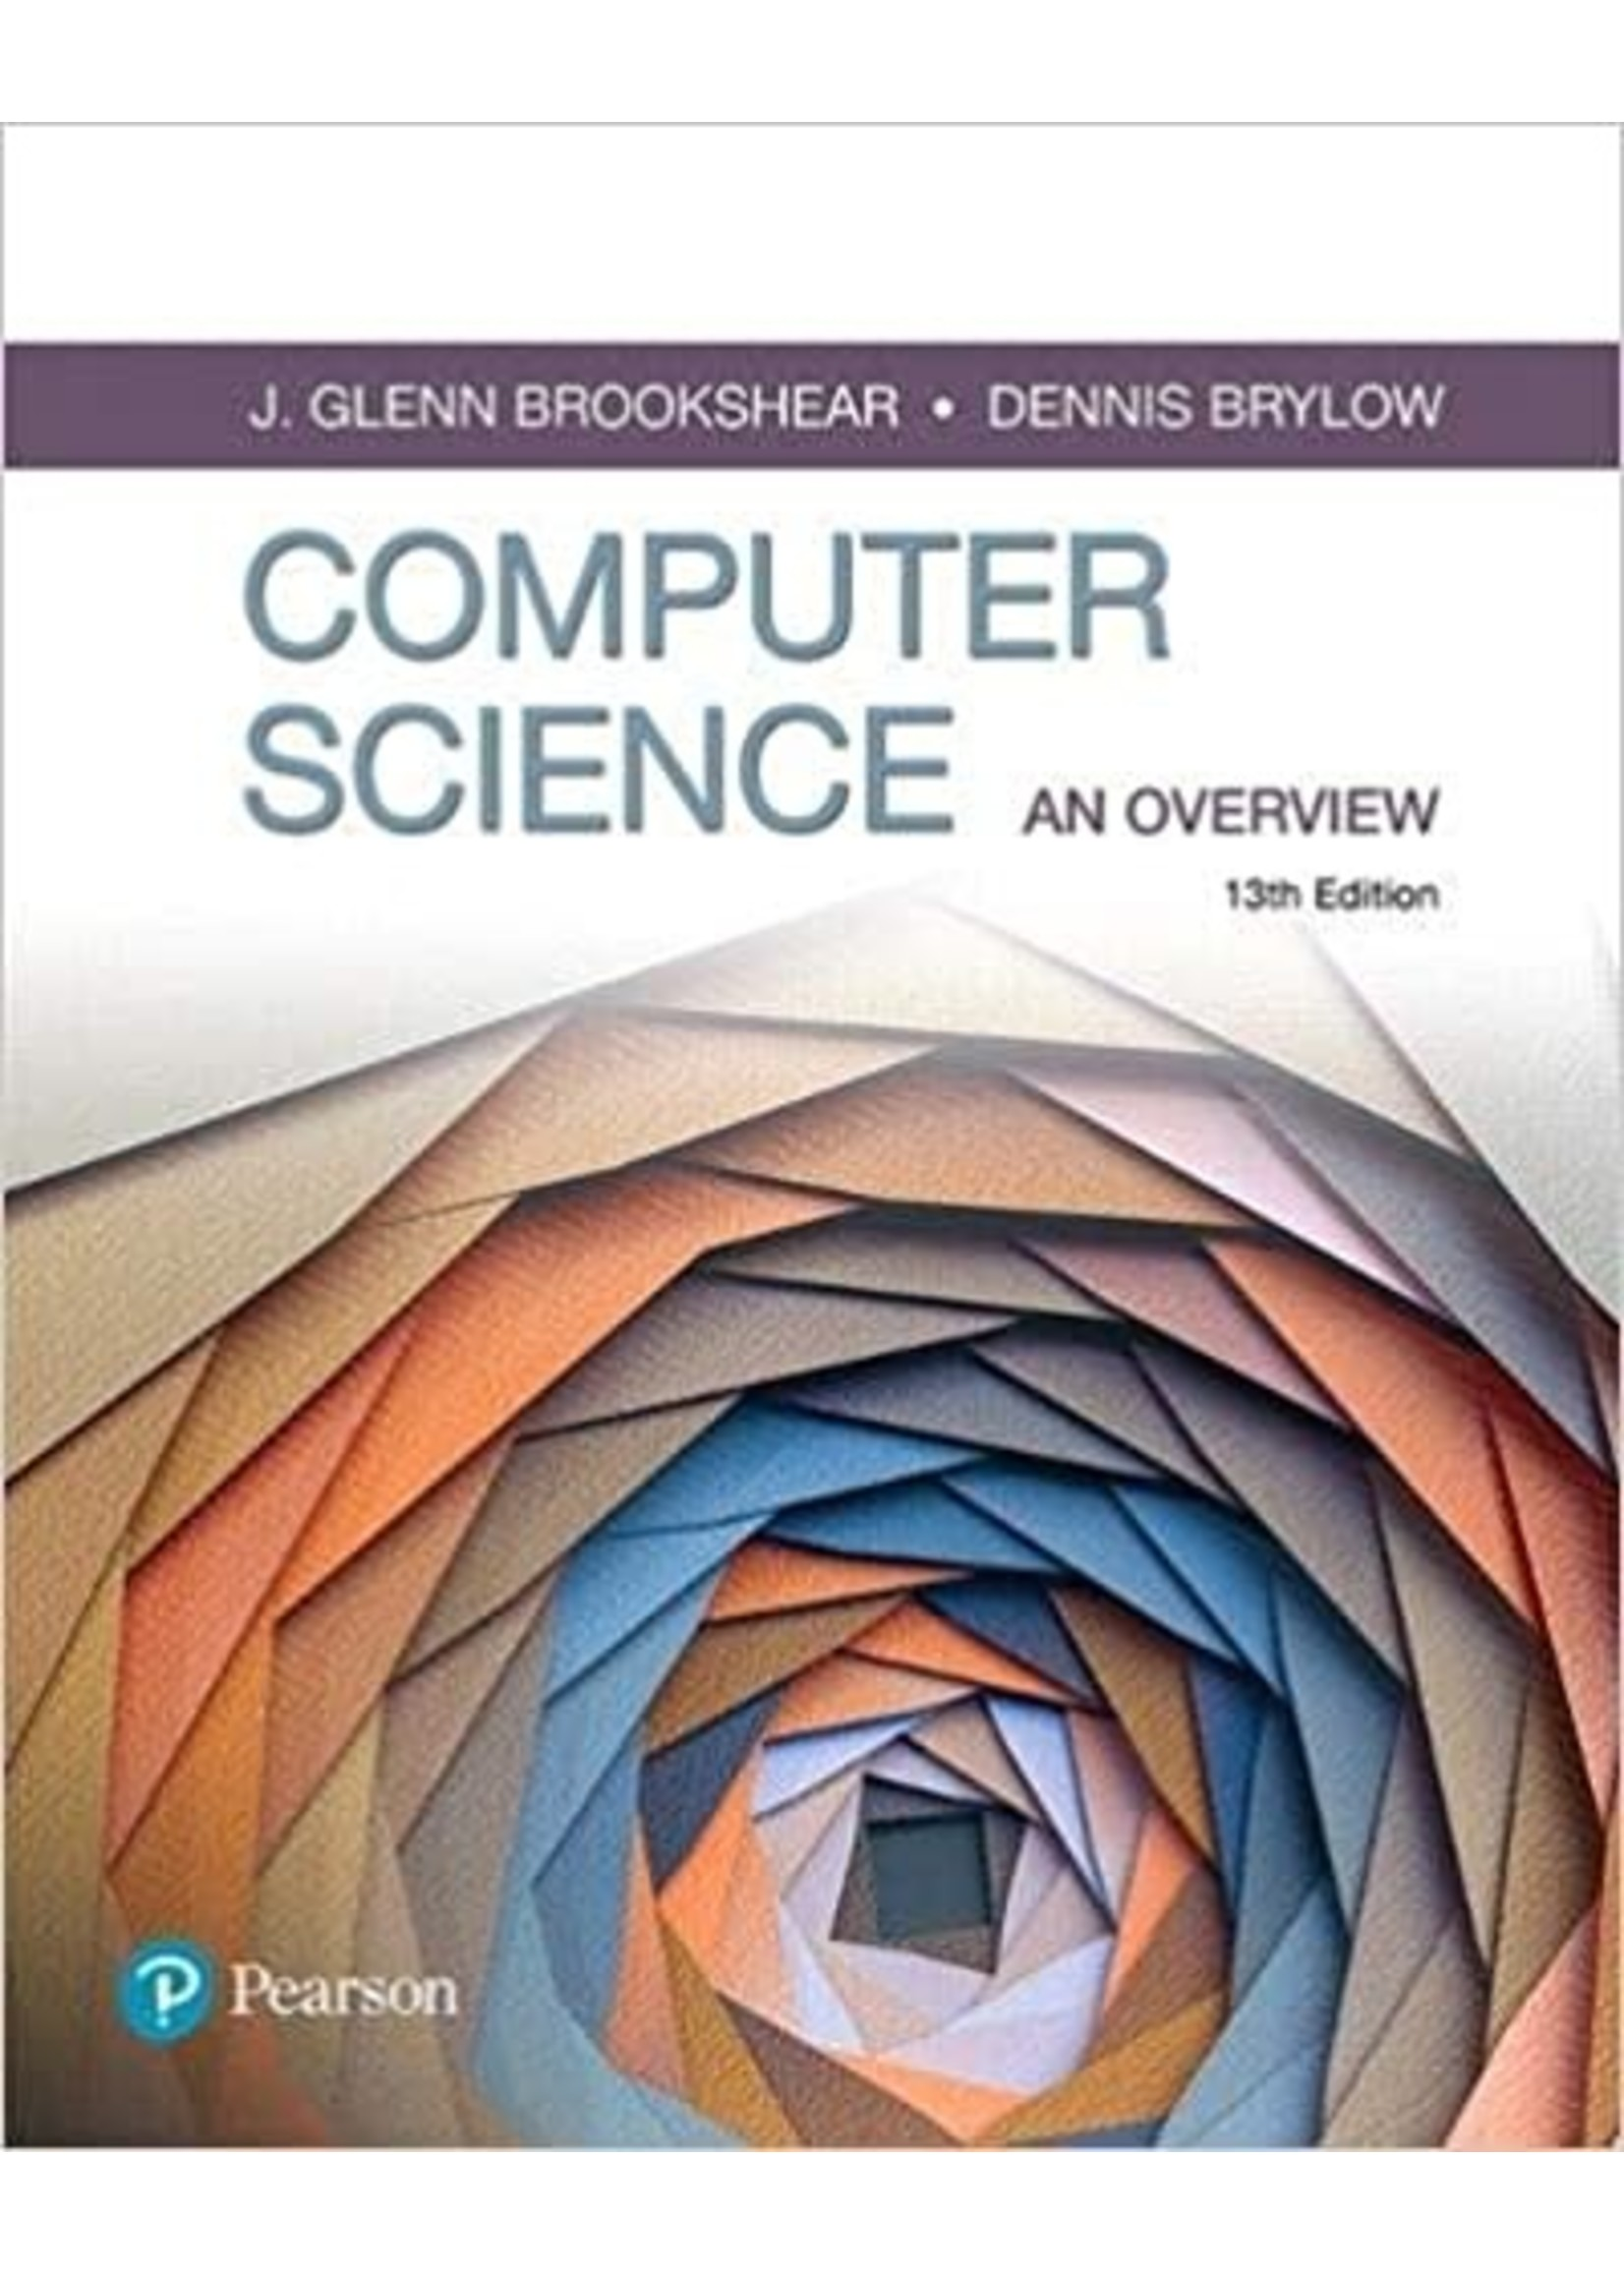 CIS161 COMPUTER SCIENCE: OVERVIEW